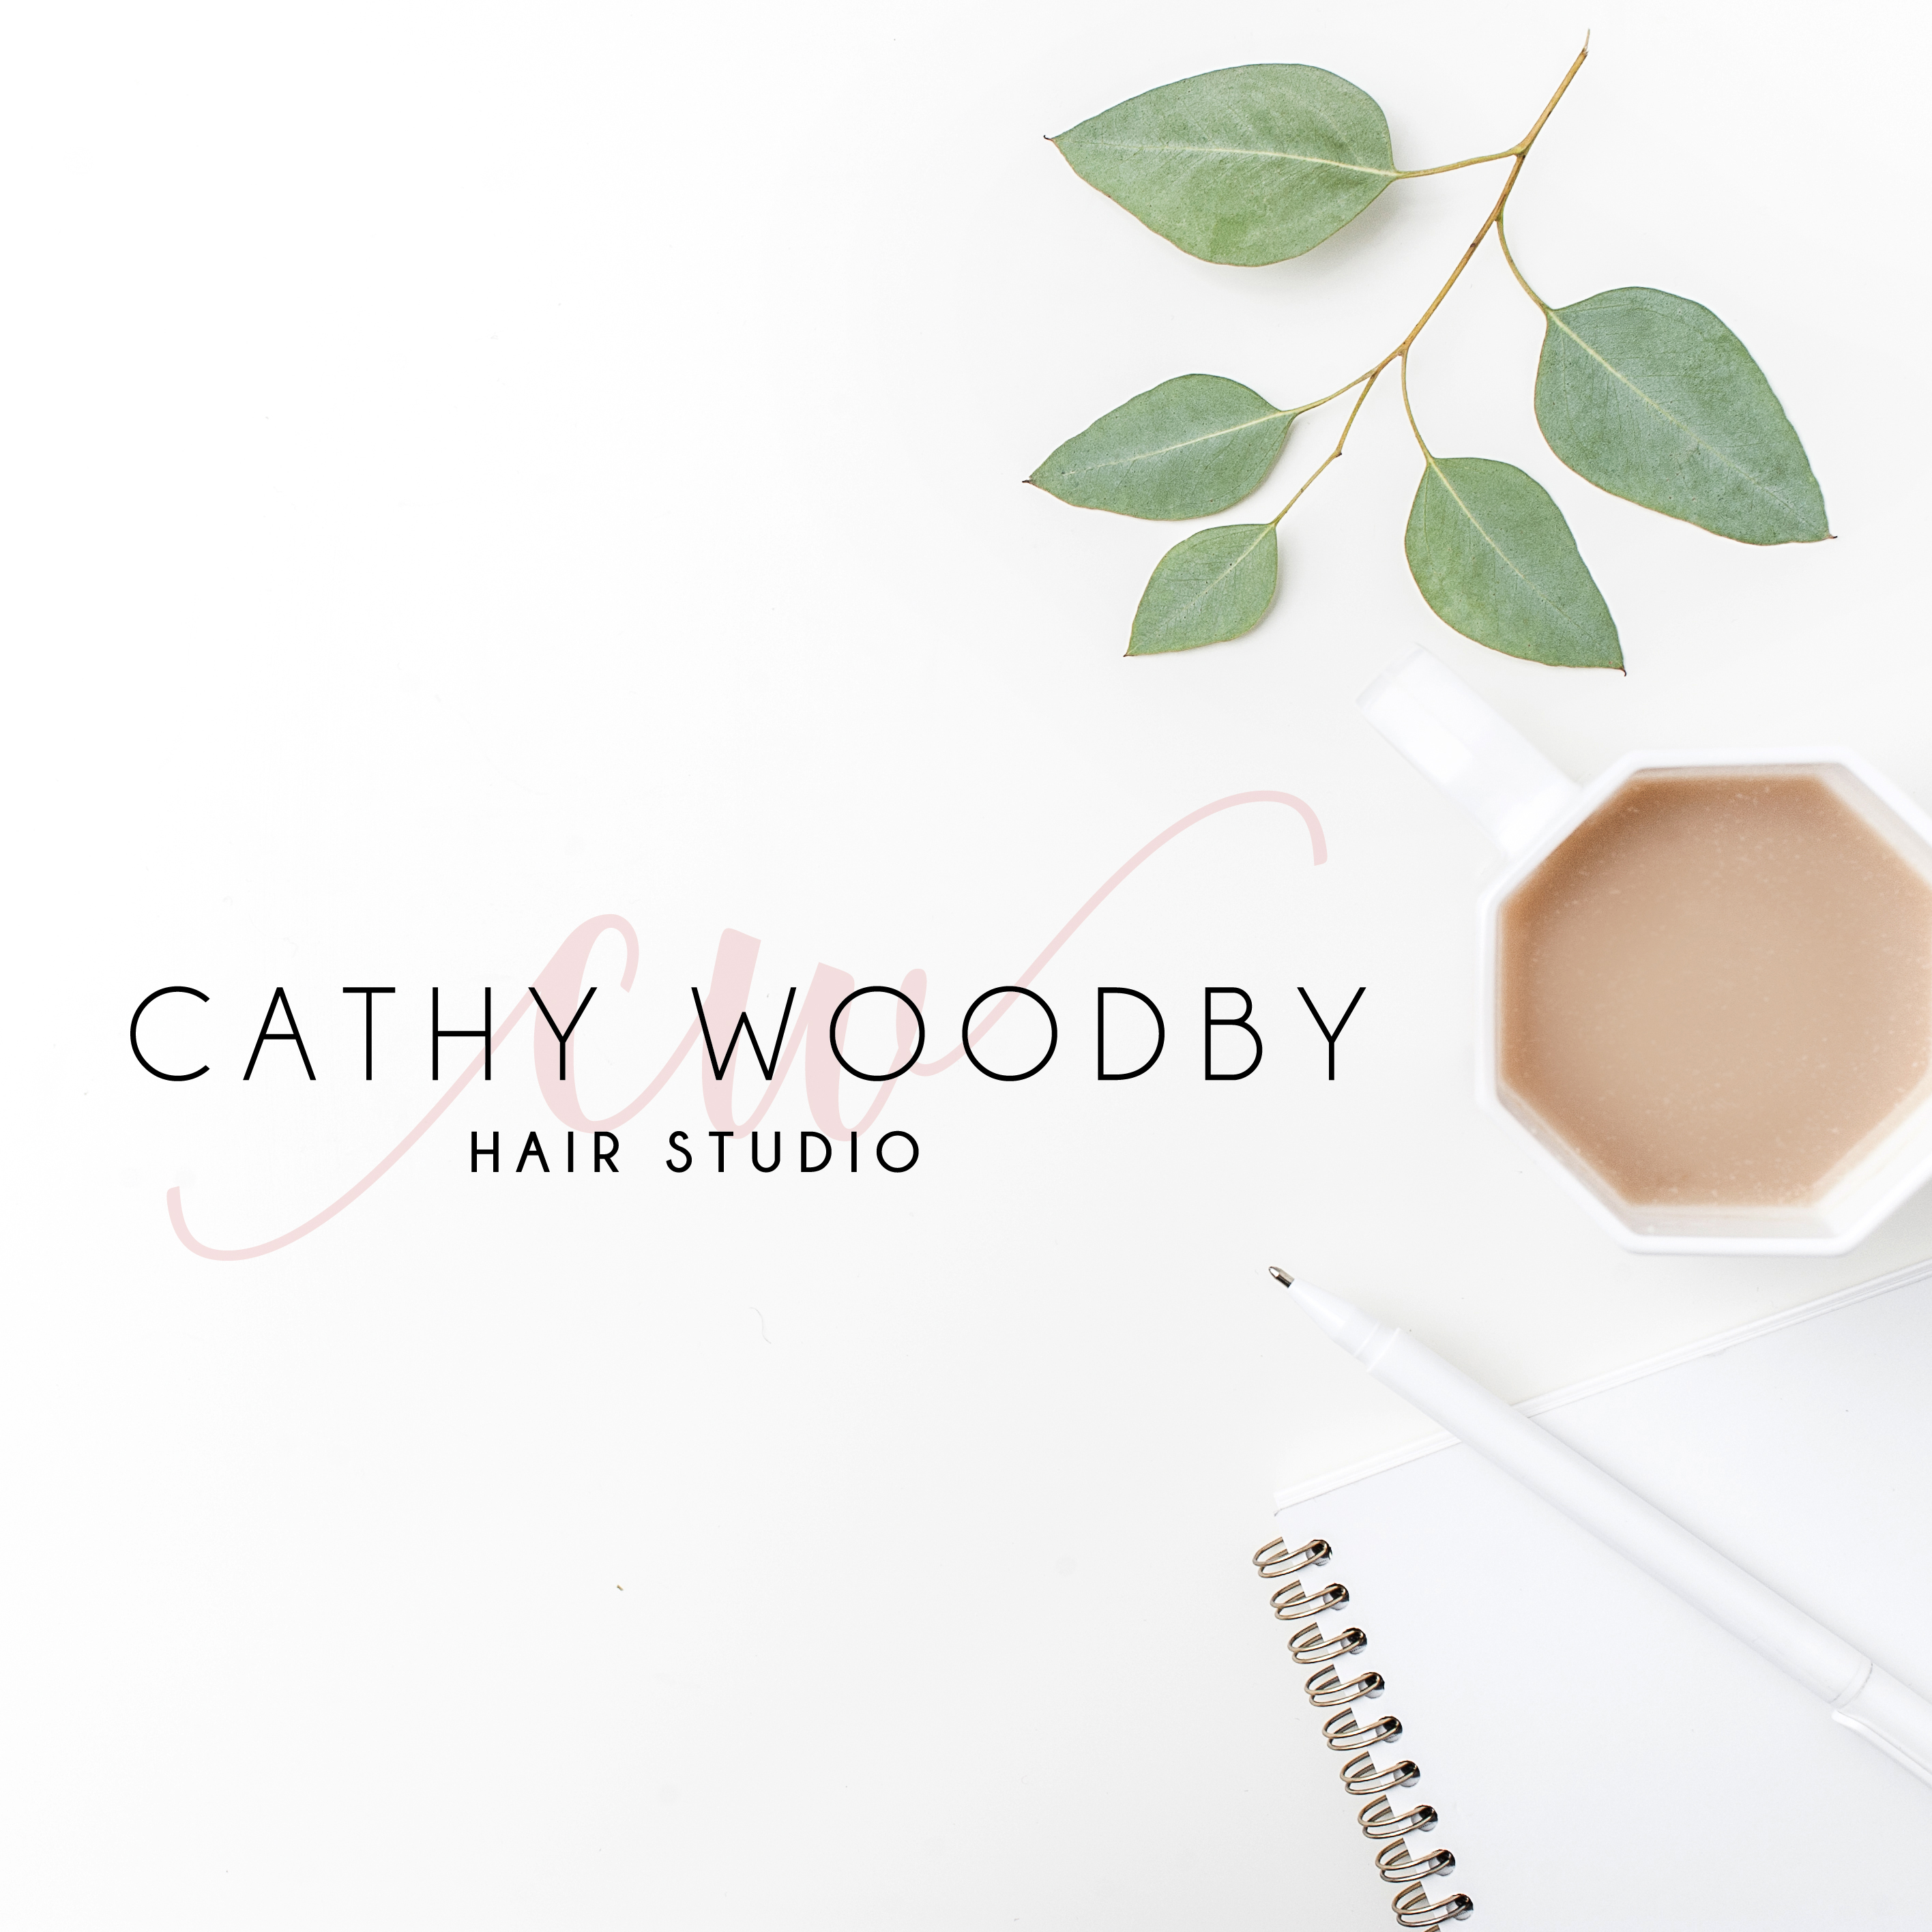 CathyWoodby